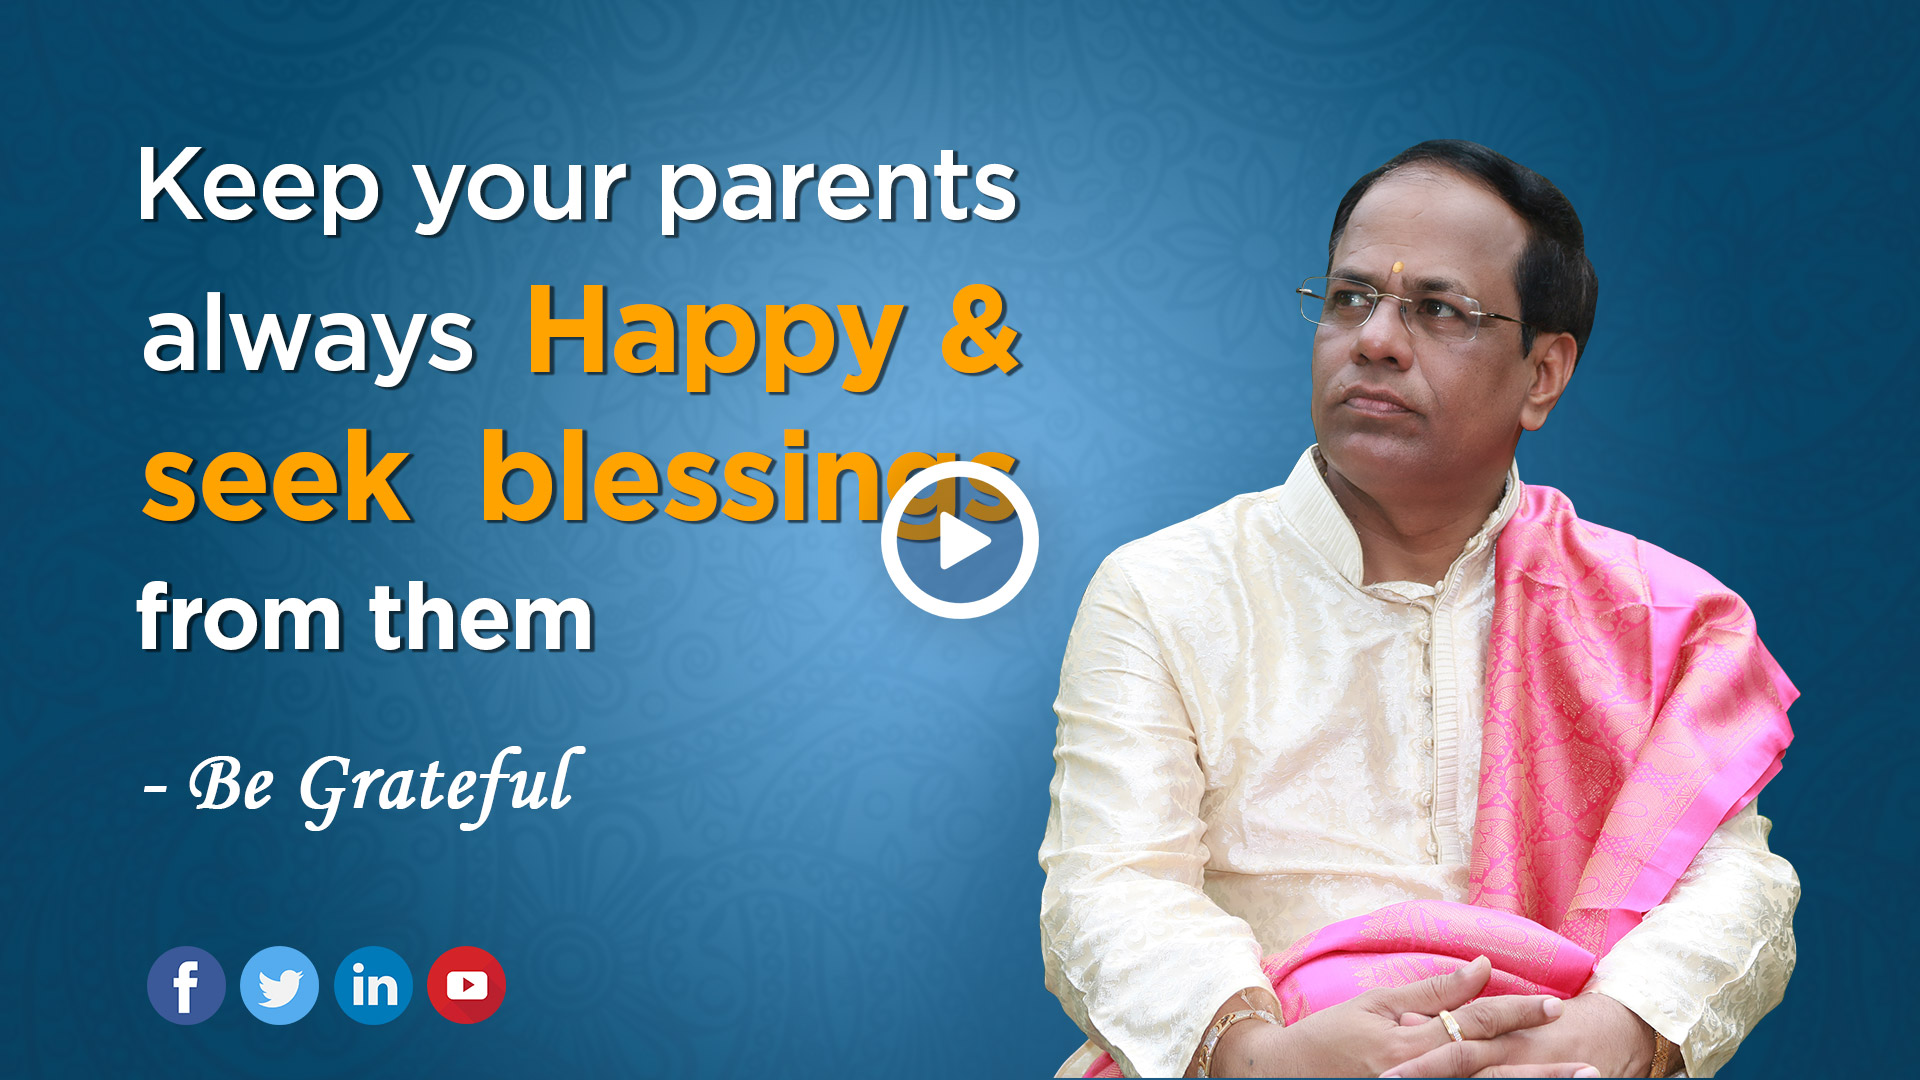 Keep Your Parents Always and Seek Blessings From Them